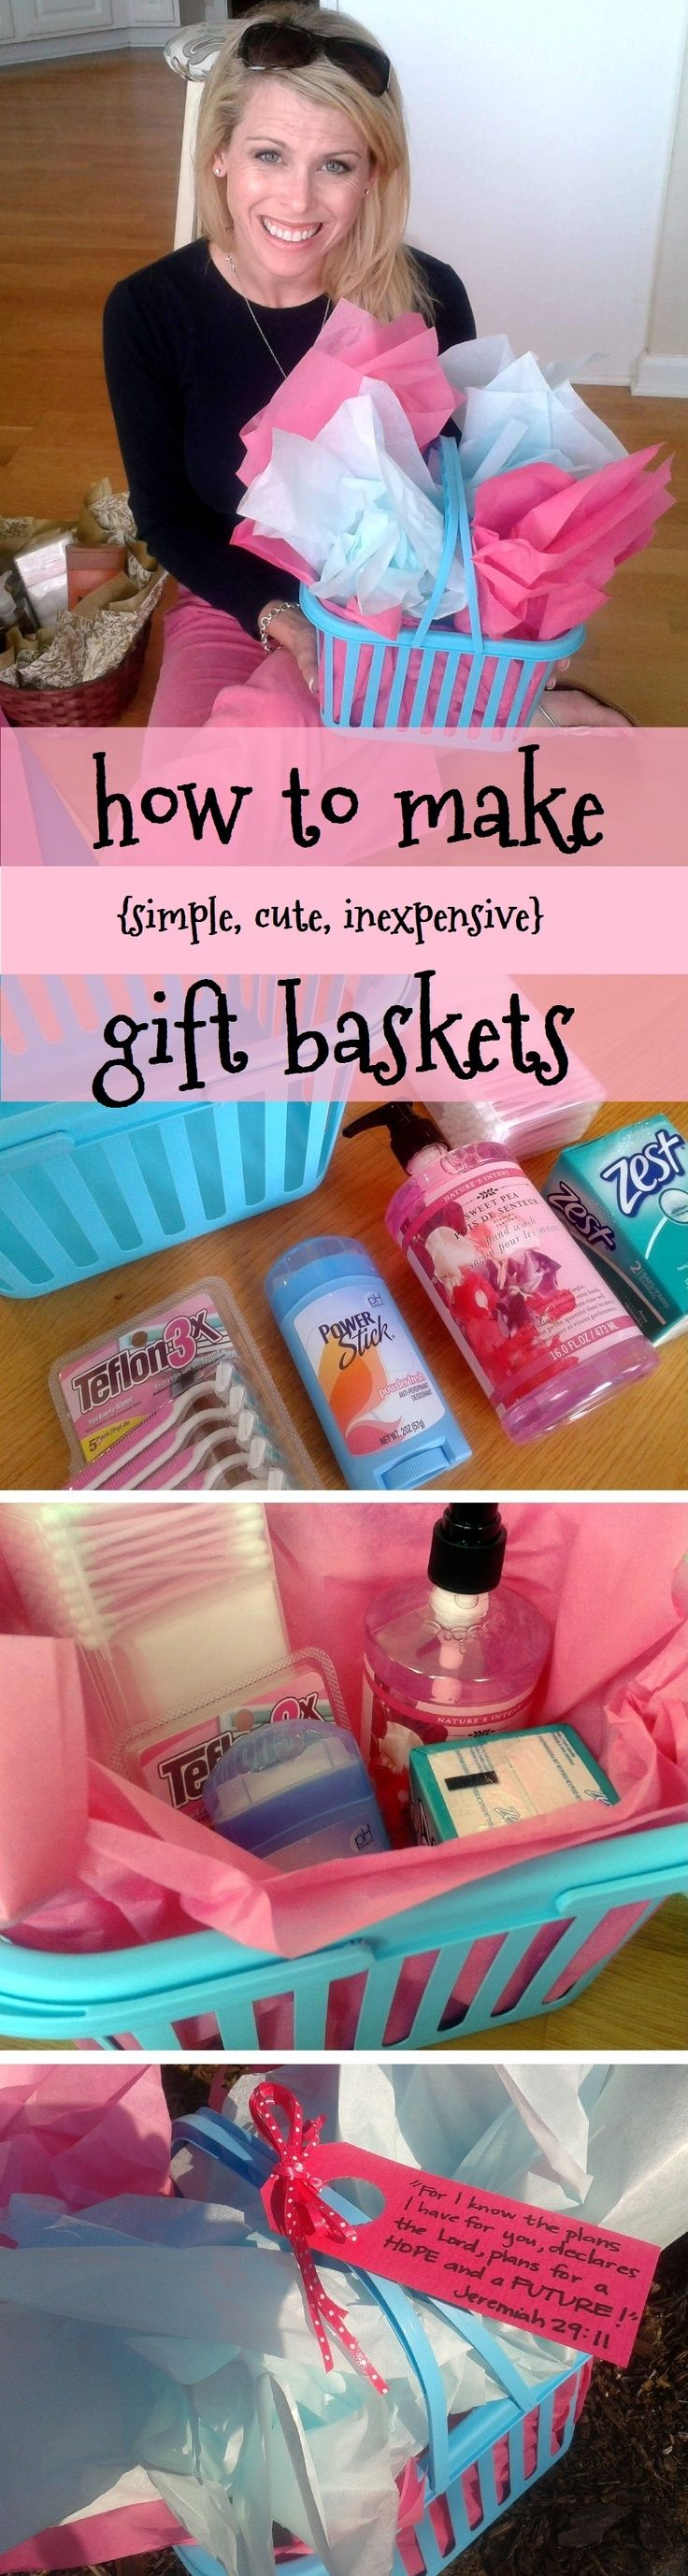 how to put together an easy, cheap, cute gift basket this one cost ~ six $ total...